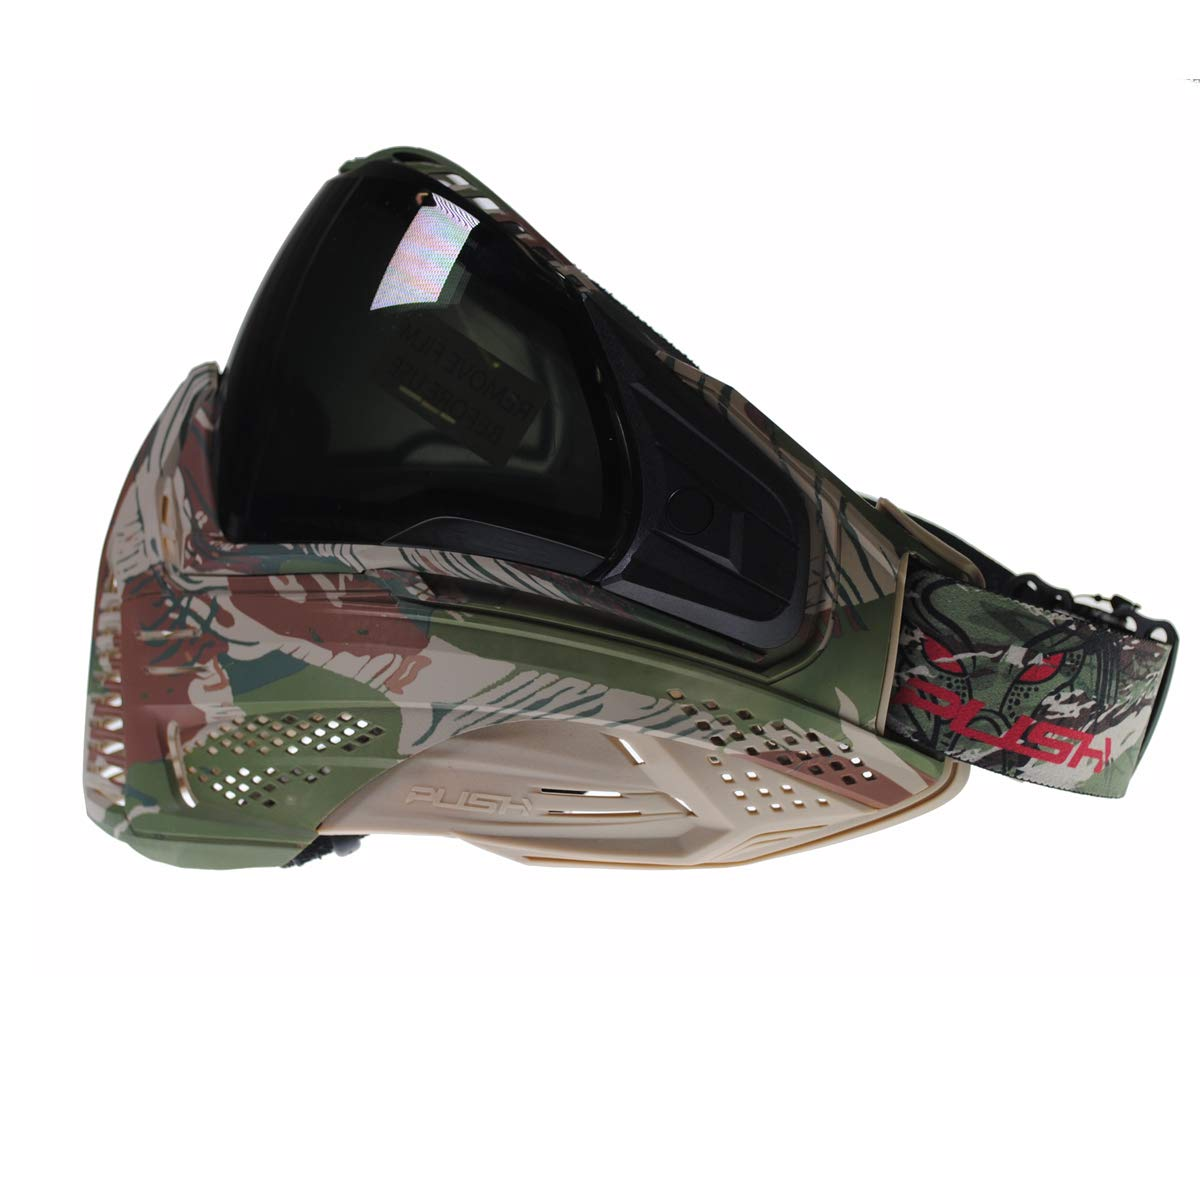 Push Unite Paintball Goggles MASK with Quad PANE Lens and CASE (Predator Camo Smoke Lens) by Push Paintball